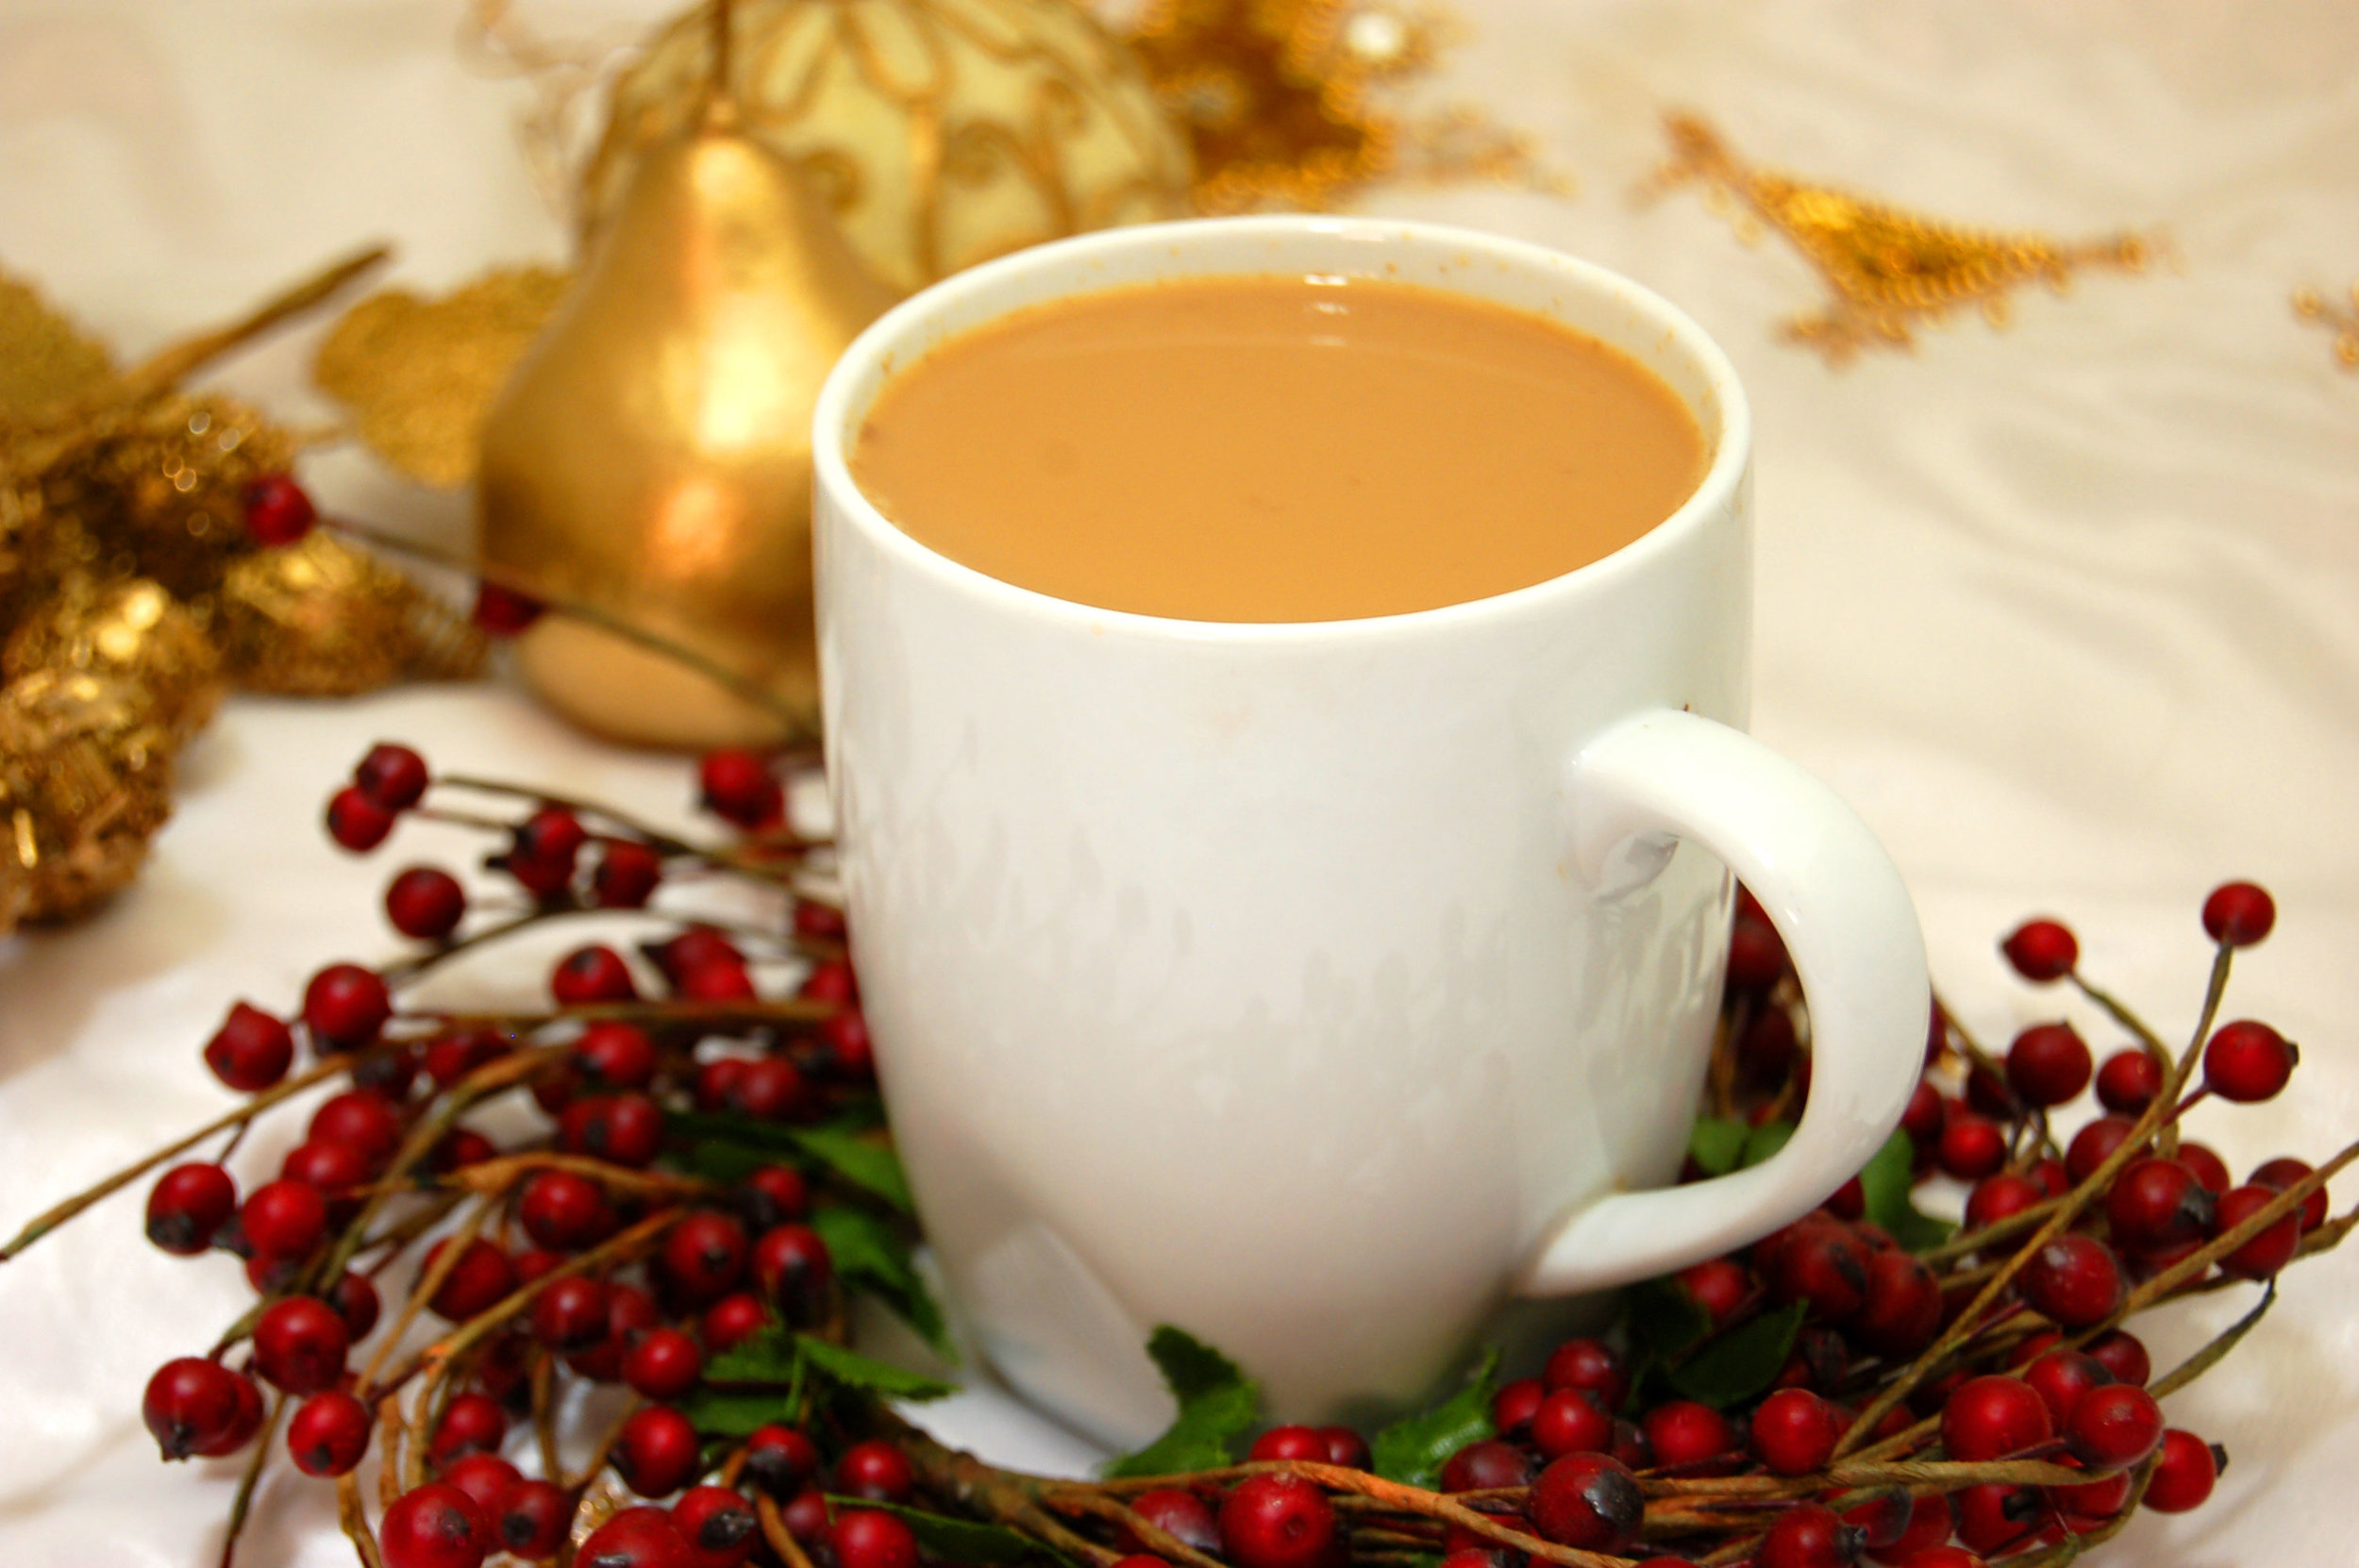 CHRISTMAS CHAI - (Made with Arvinda's Christmas Chai Masala)Celebrate the holiday season with a decadent jolly cup of Masala Chai with notes of cinnamon, cloves and orange. It's the perfect beverage to warm up with after a day of winter fun or besides the fireplace with loved ones. We like it sweetened with sugar so it's decadent enough to be served as a dessert beverage after a delicious meal.